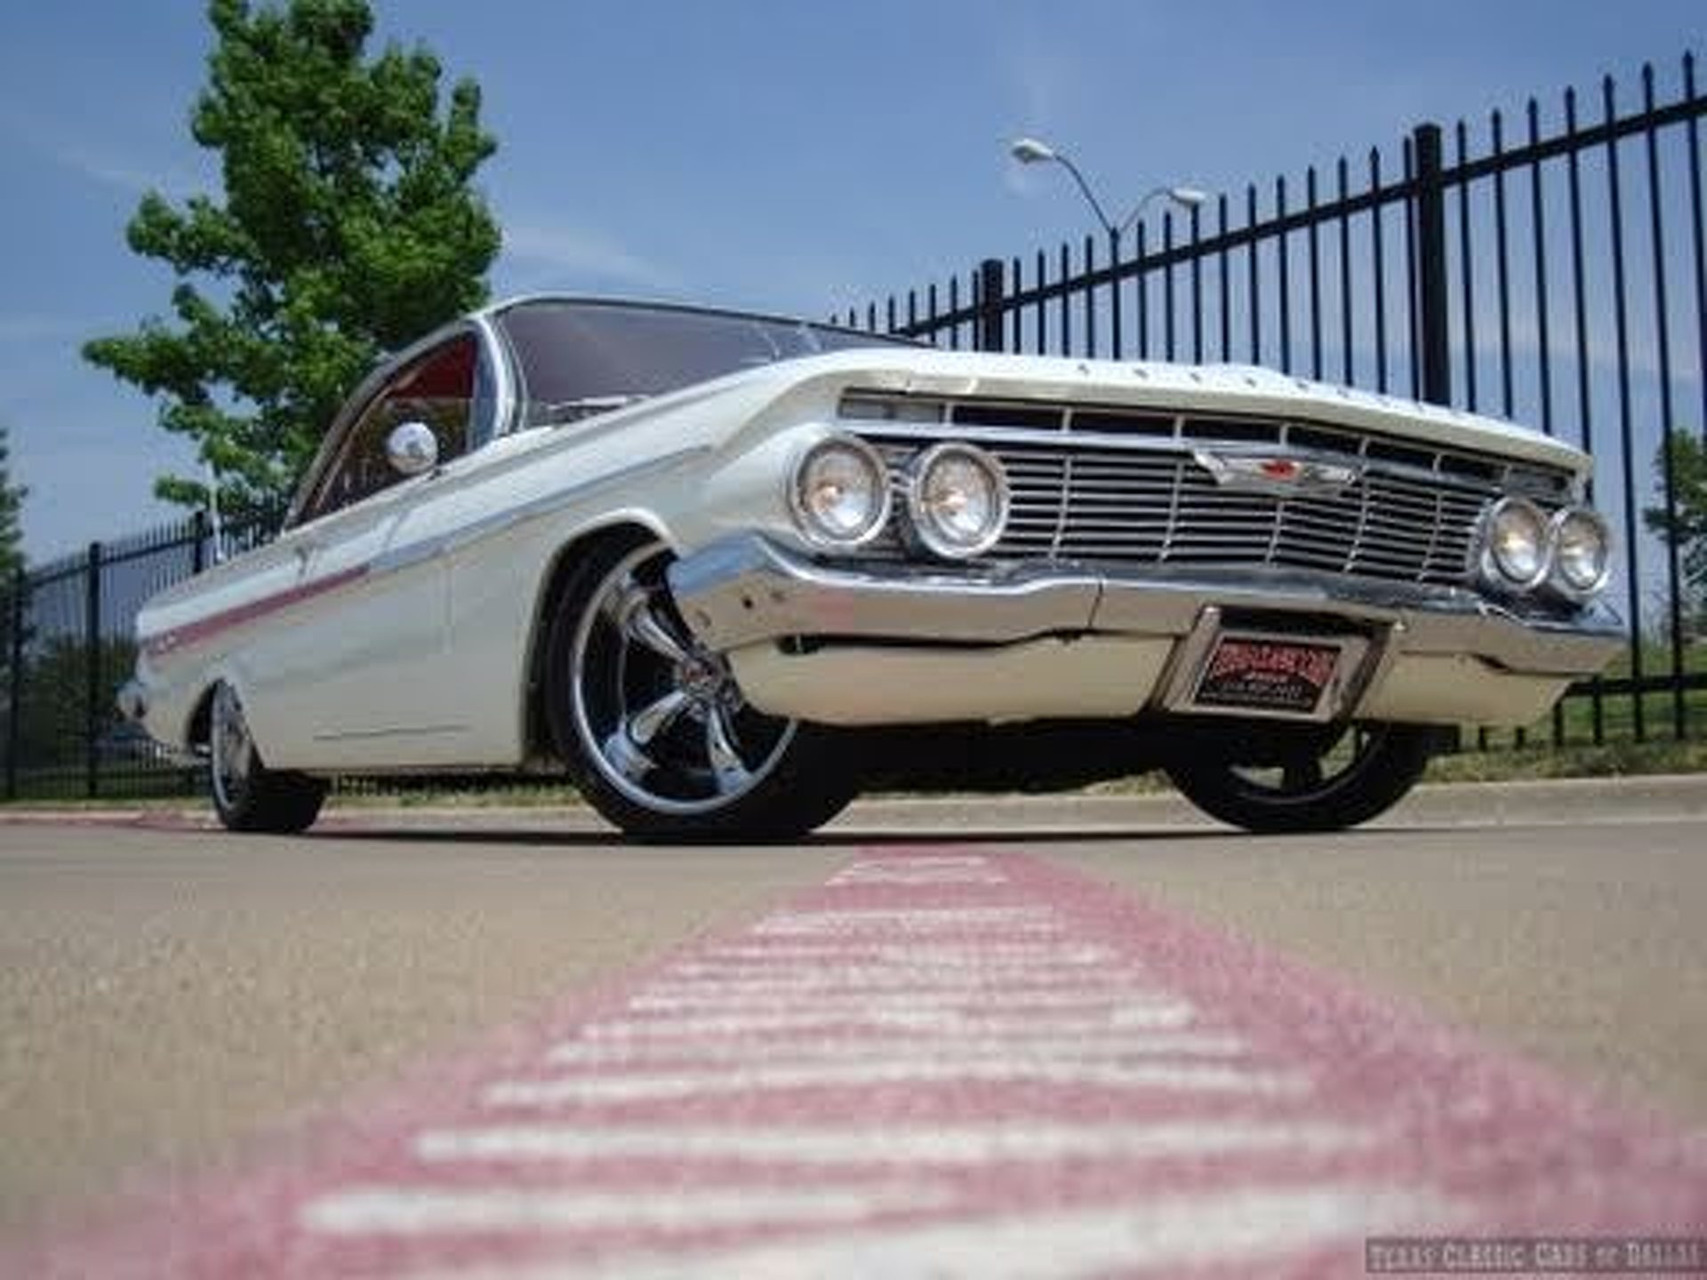 1961 Impala Bubbletop Cruizin' USA